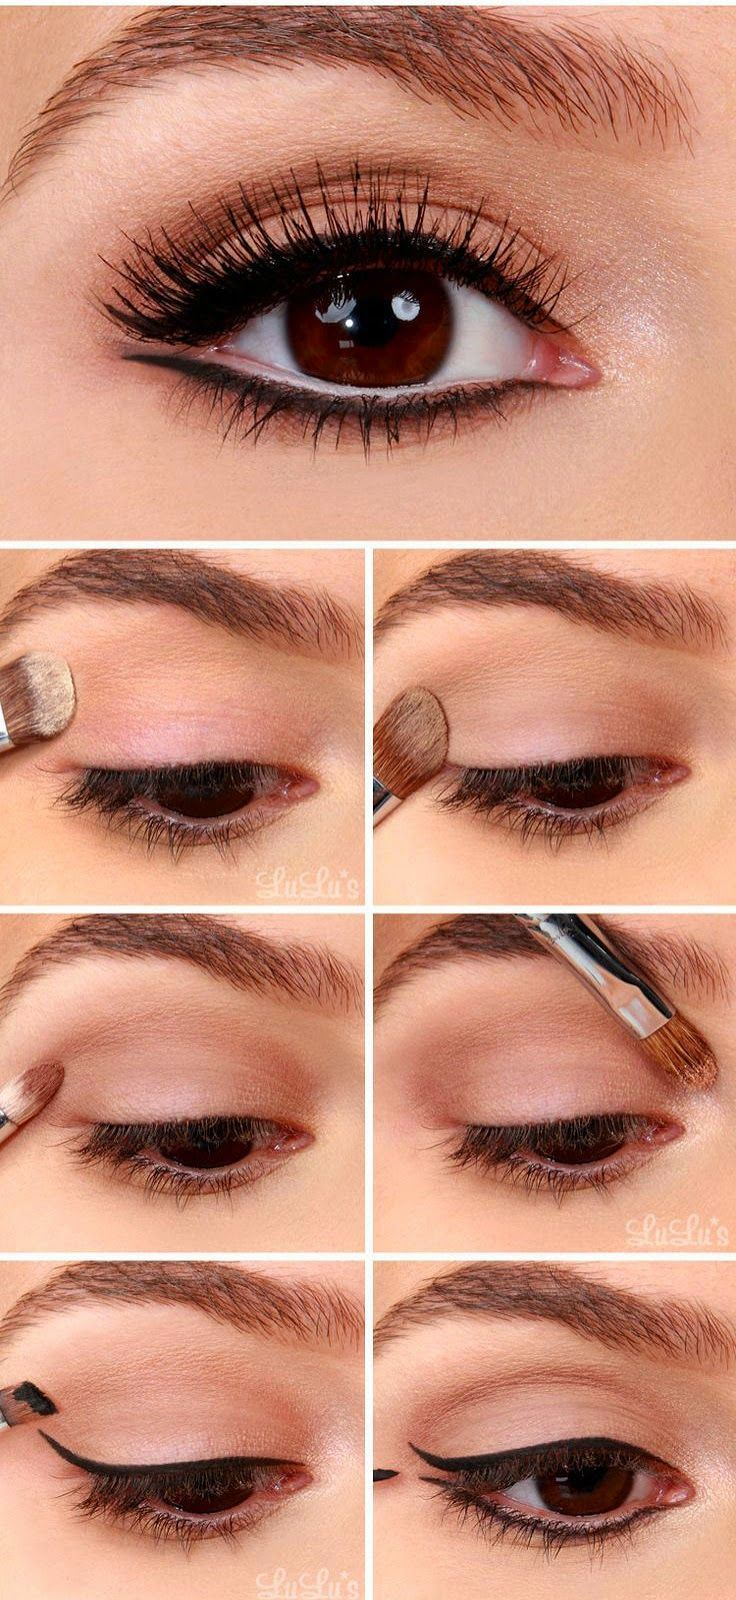 Best #Makeup Tips And #Ideas We Have Learnt From Our Moms www.everydaynewfashions.com